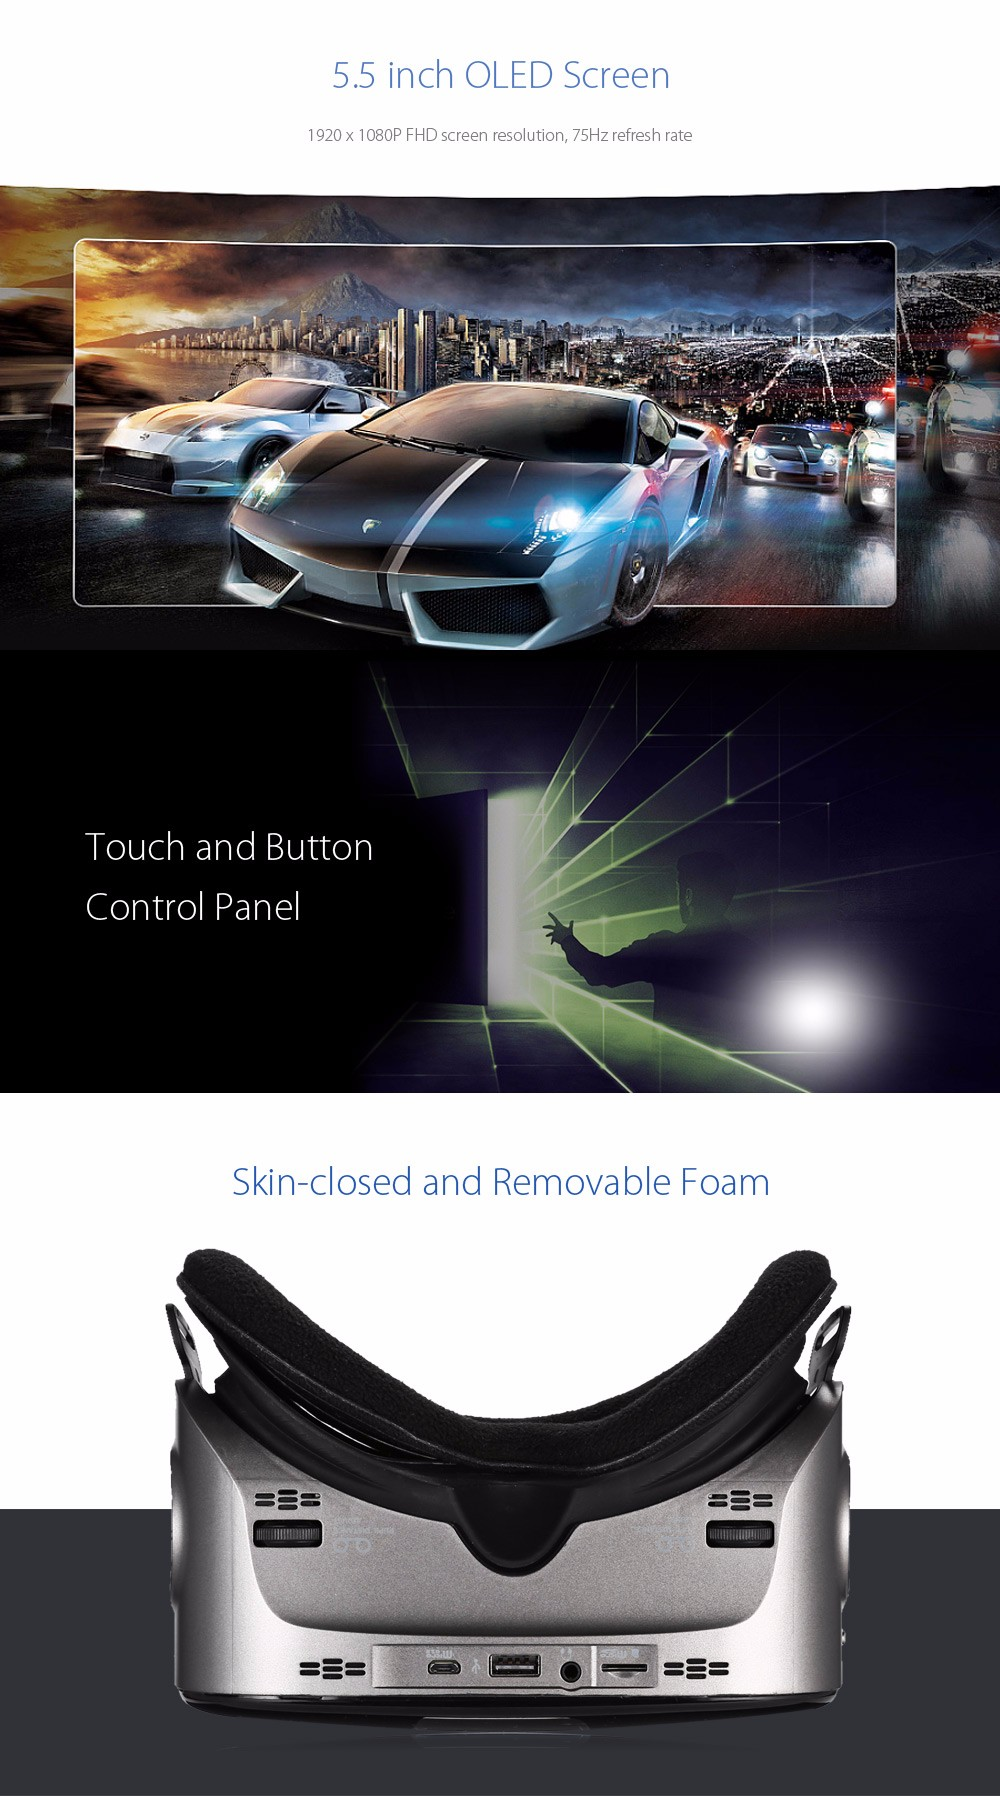 Original VIULUX V6 All-in-one VR 3D Headset Bluetooth WiFi 110 Degree FOV IPD Adjustment 5.5 inch Display 1920*1080p support 4k